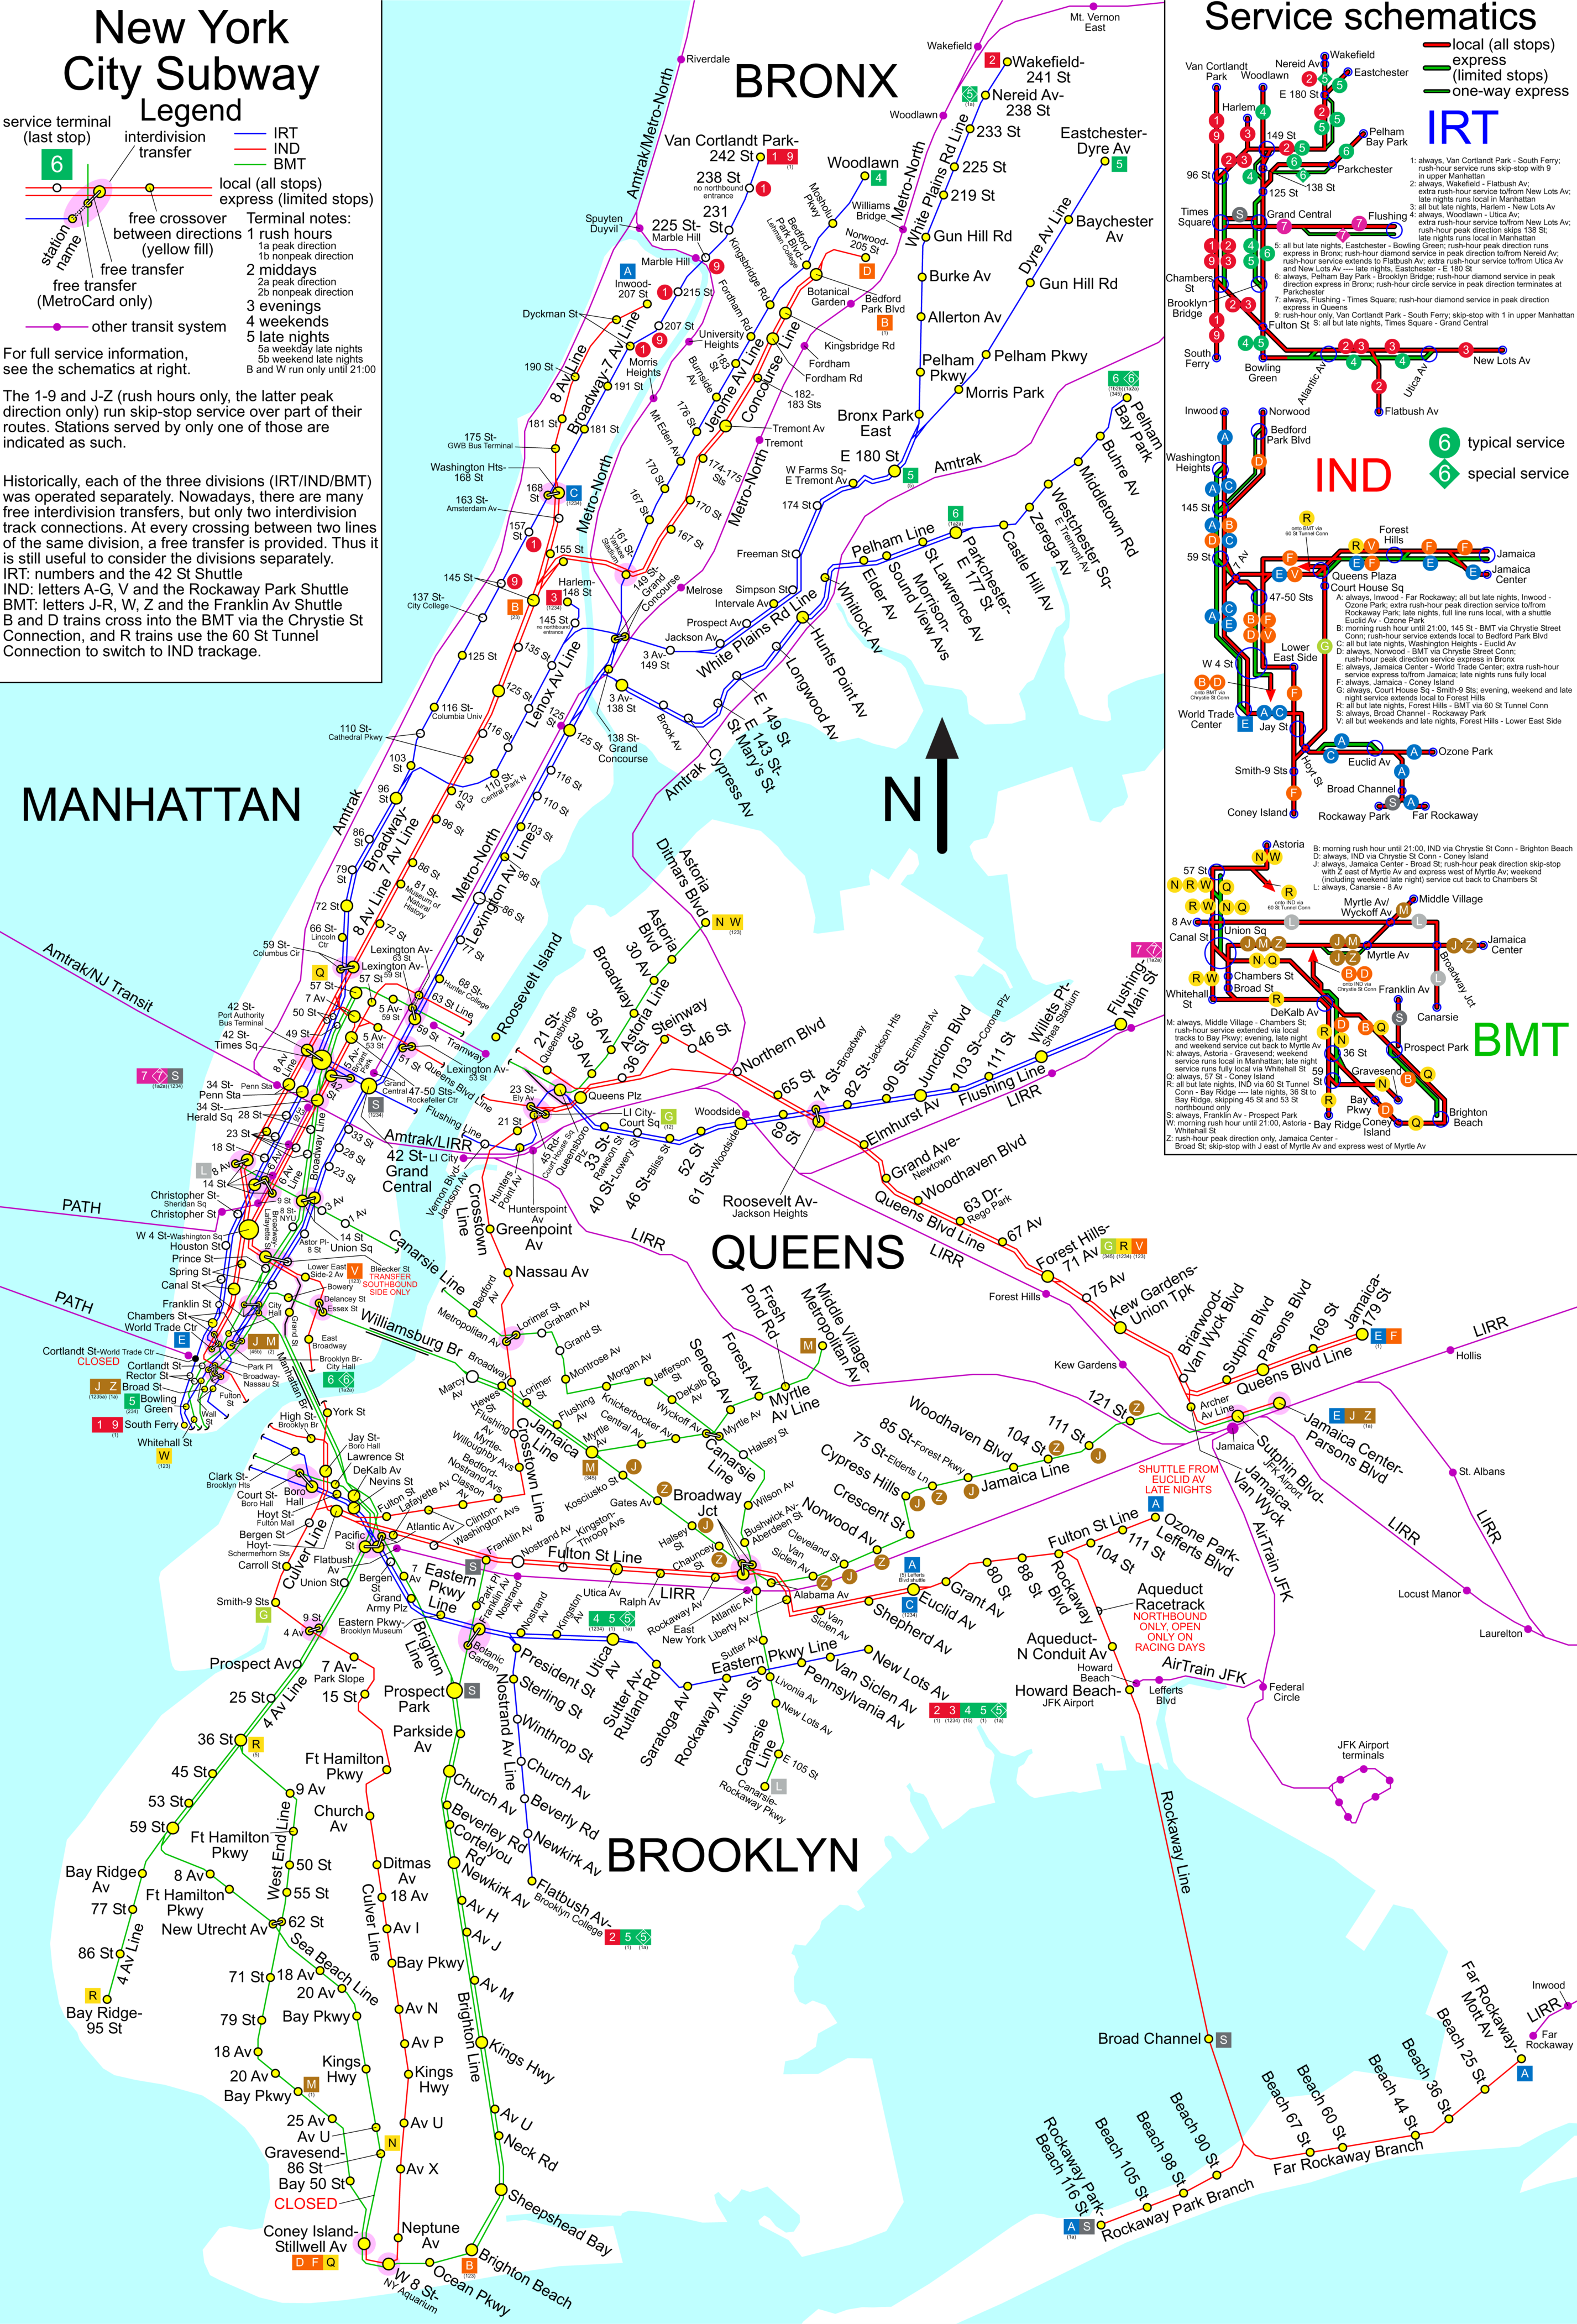 Posts By Listofmaps You Can See A Map Of Many Places On The List - New york map manhattan pdf